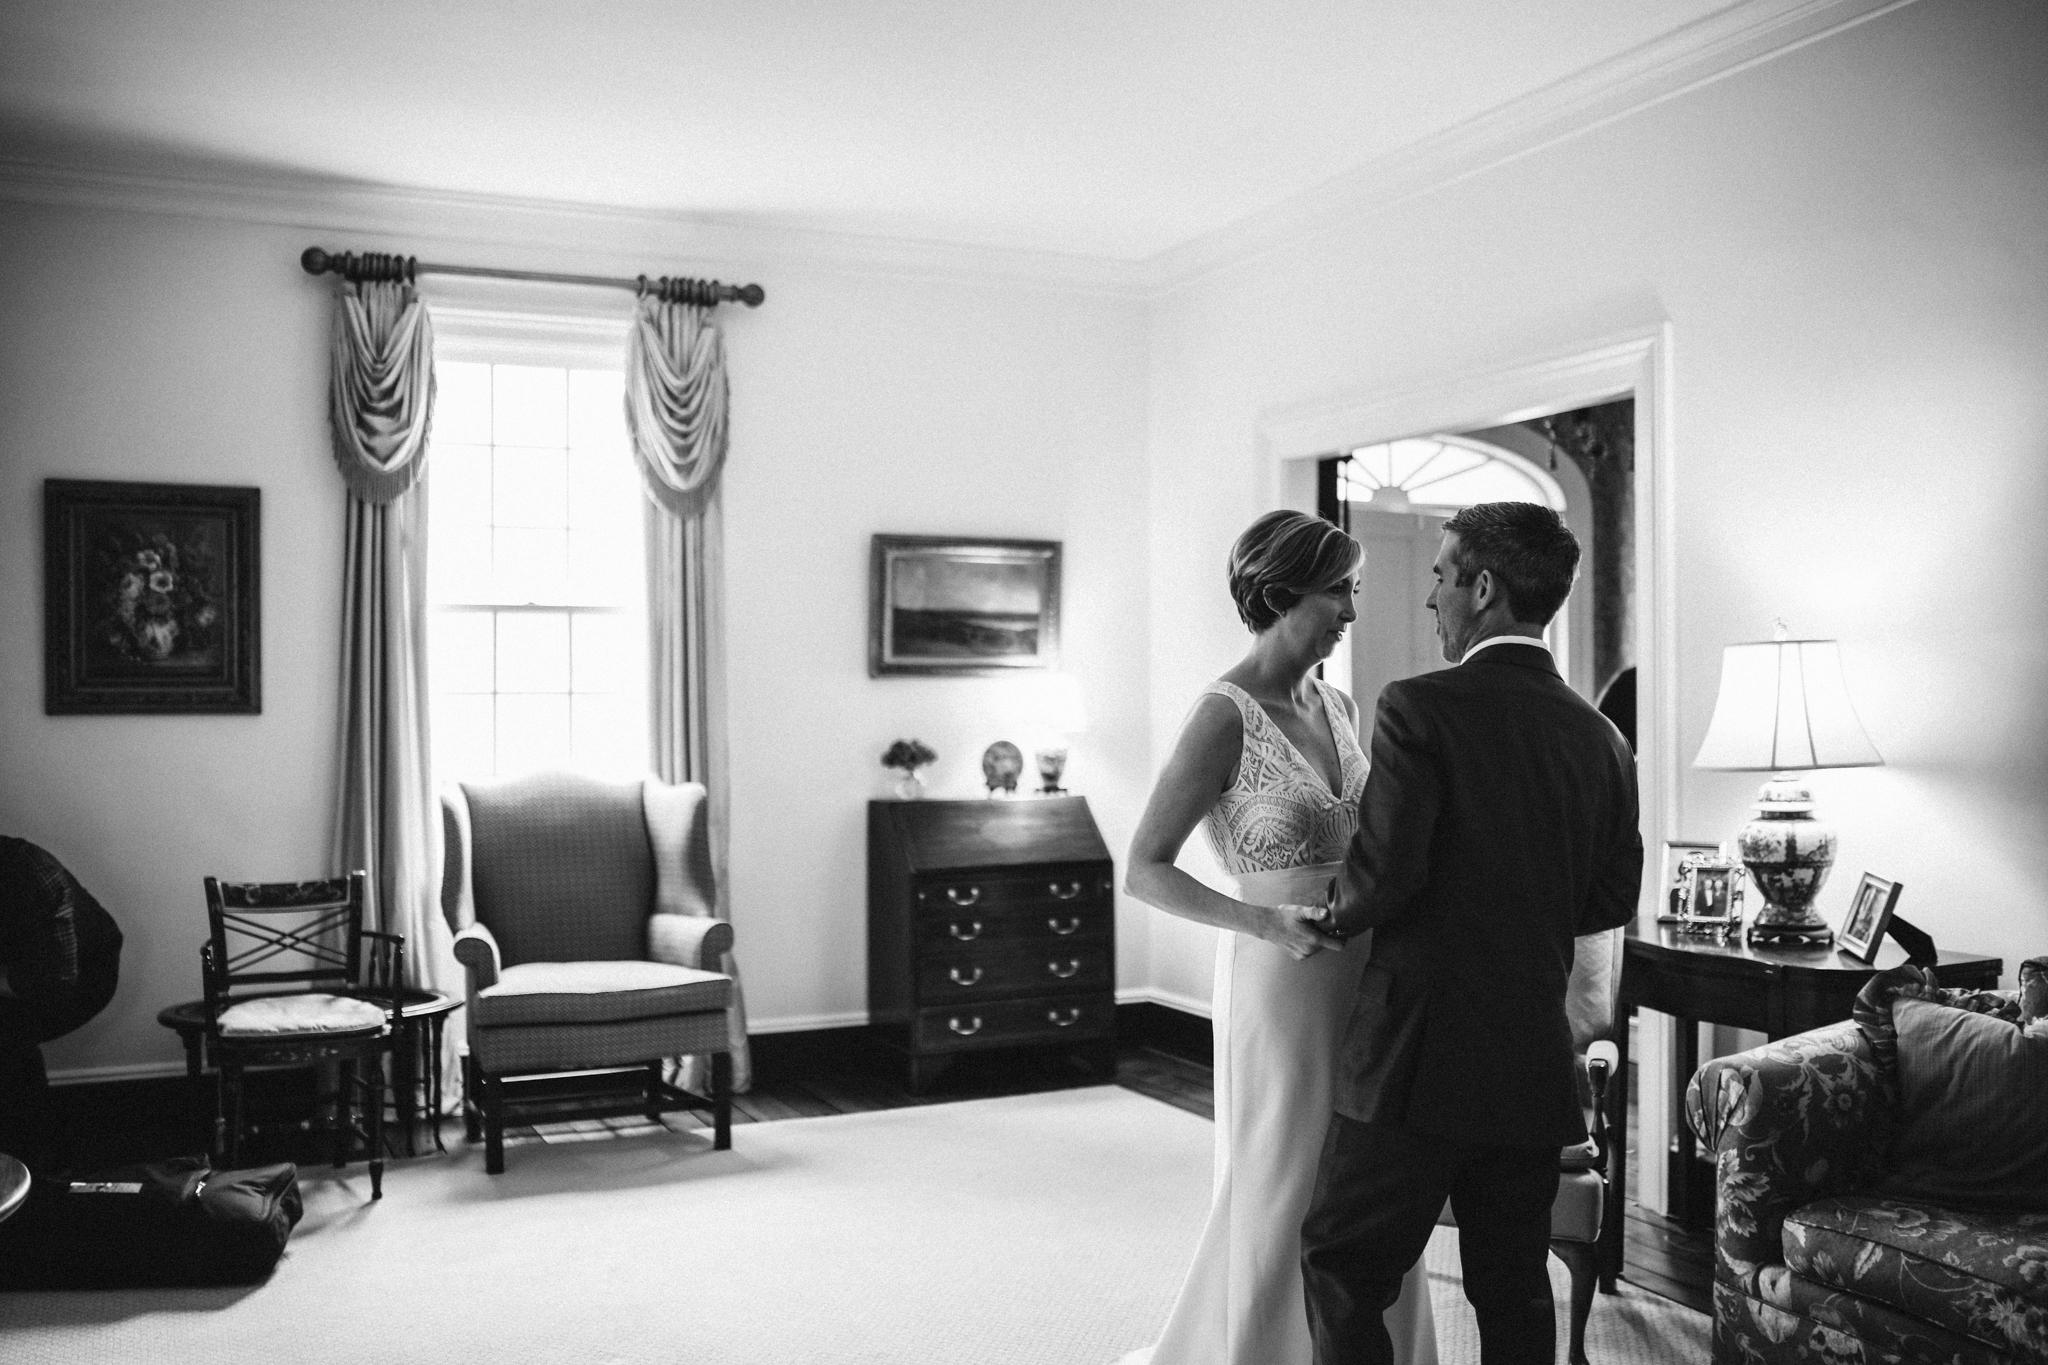 cook_wedding_richmond_virginia_rebecca_burt_photography-9.jpg